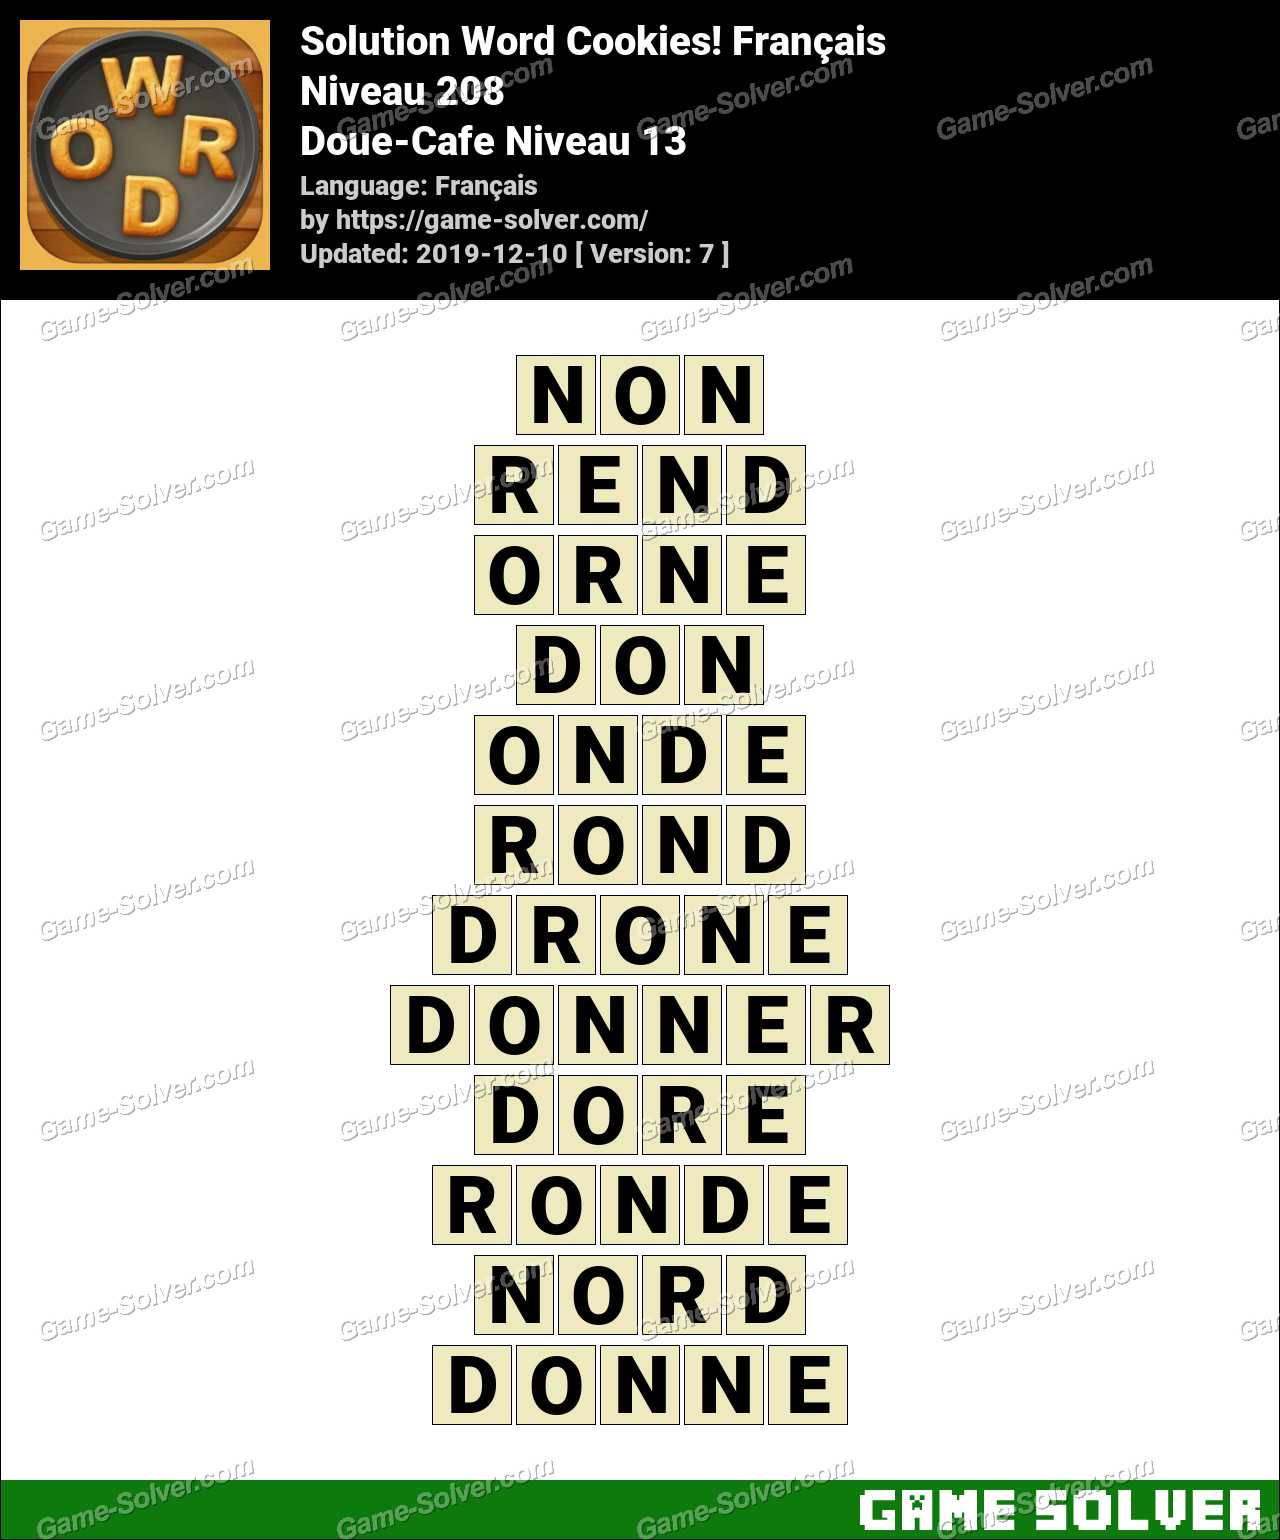 Solution Word Cookies Doue-Cafe Niveau 13